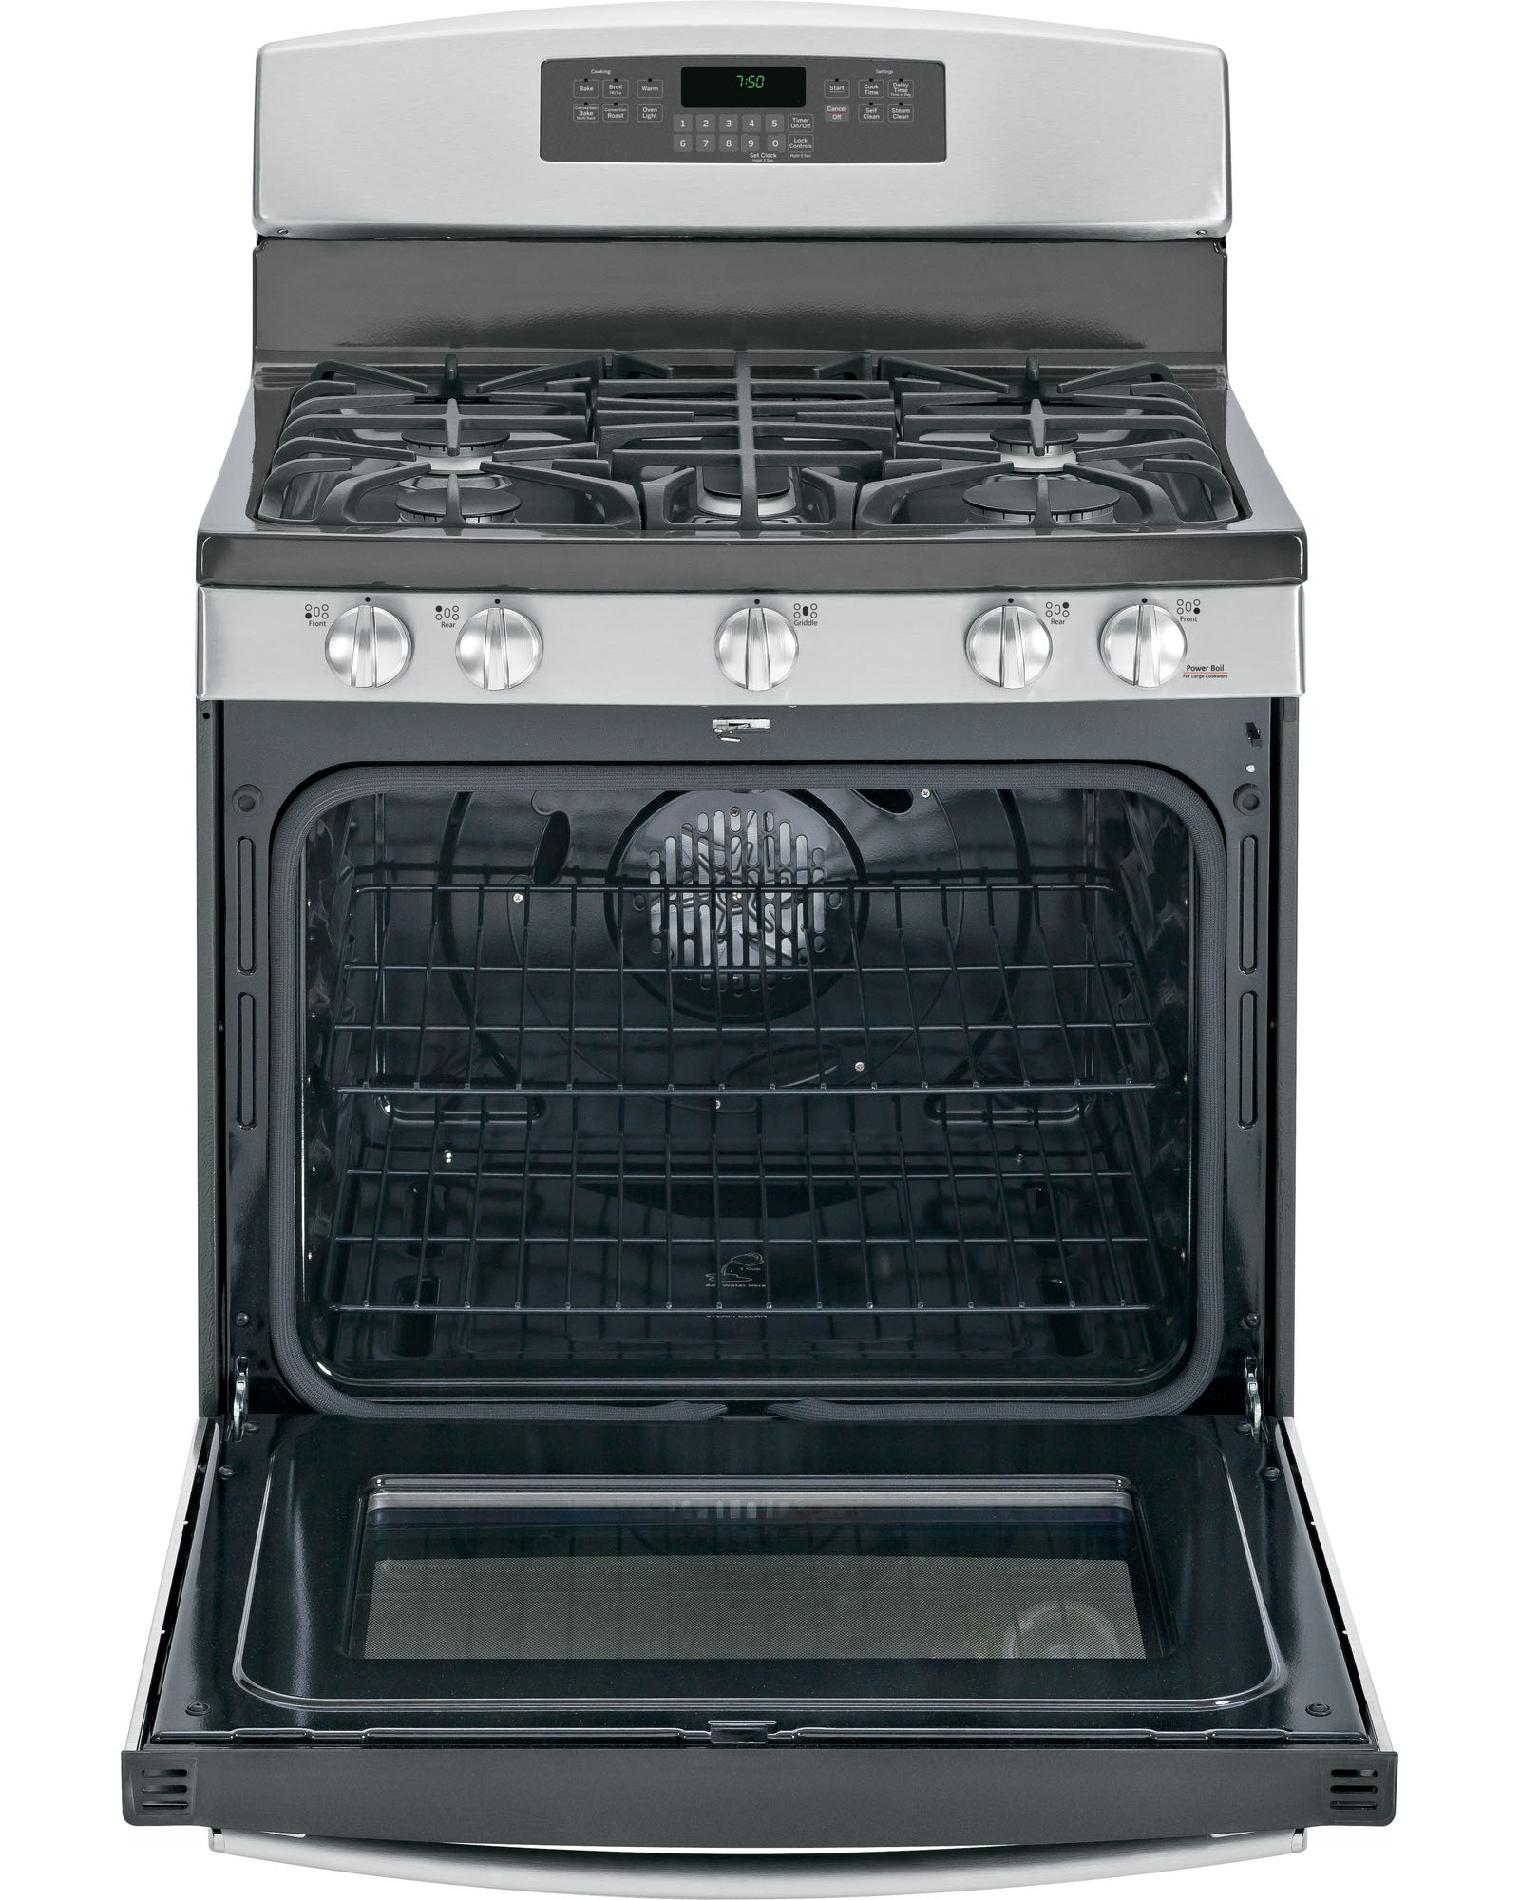 GE 5.6 cu. ft. Gas Range w/ Convection - Stainless Steel